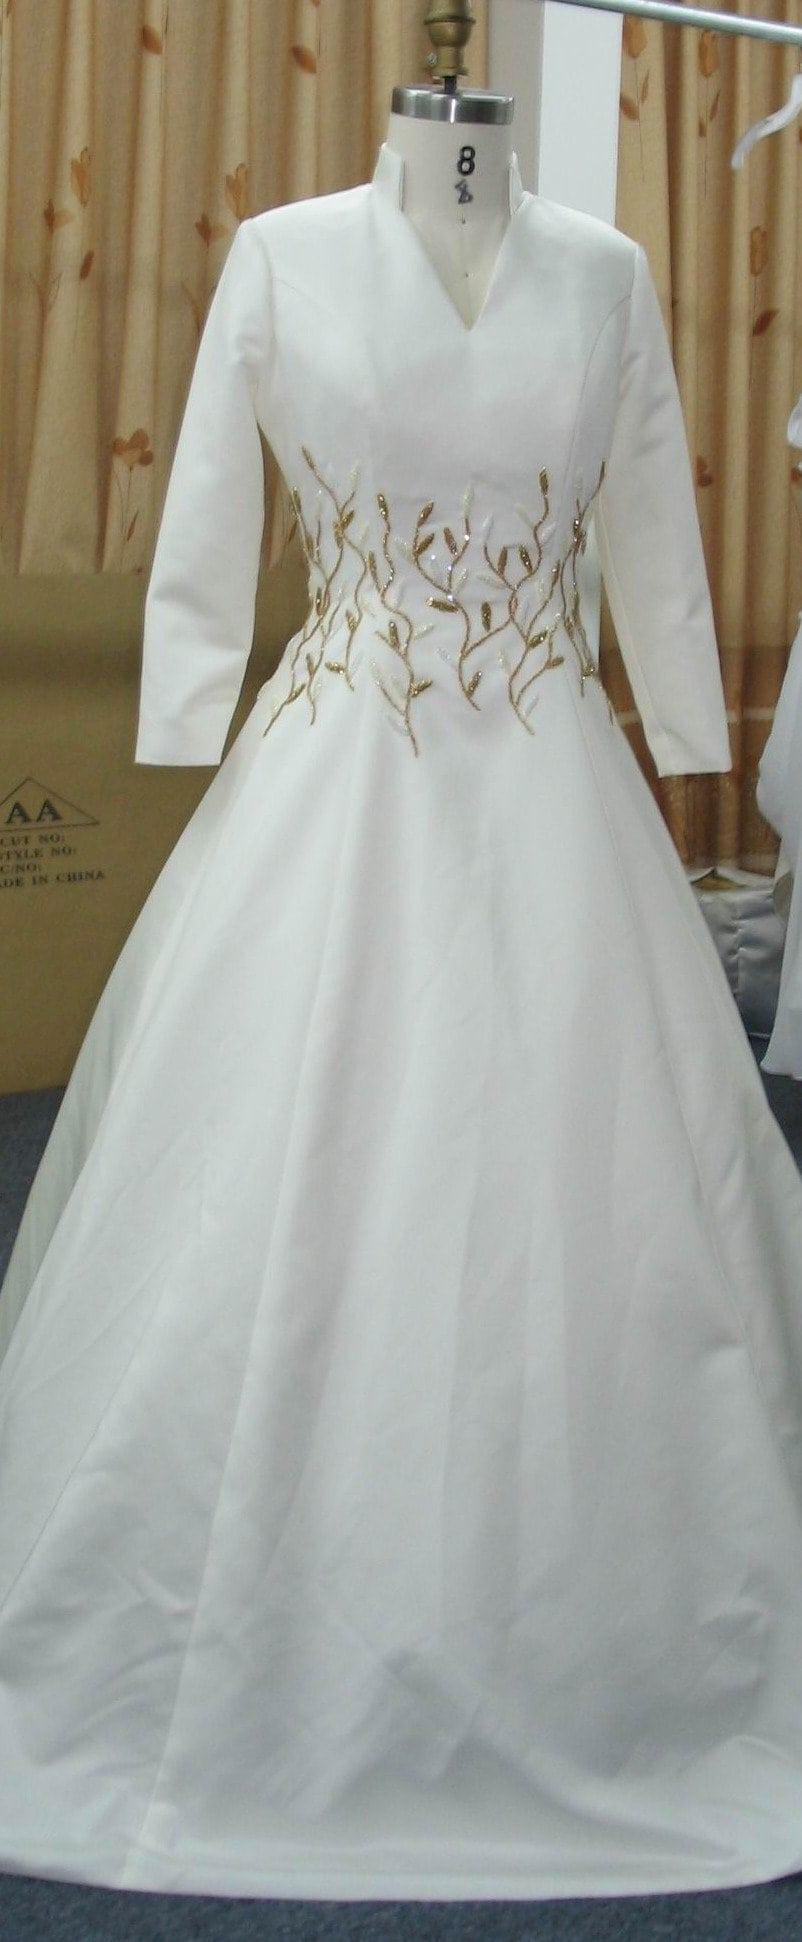 Long Sleeve Military Ball Gowns -Plus Size Formal Gowns